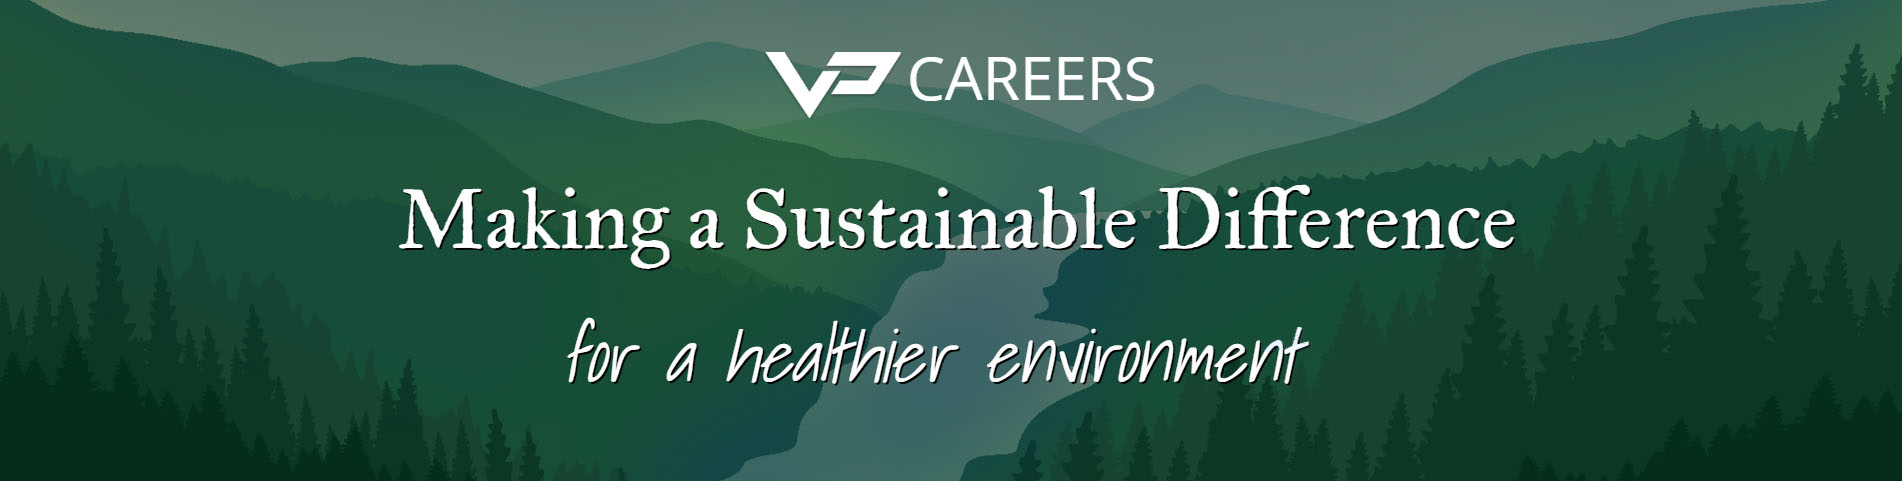 Valley Proteins Header - Valley Proteins Careers - Making a Sustainable Difference